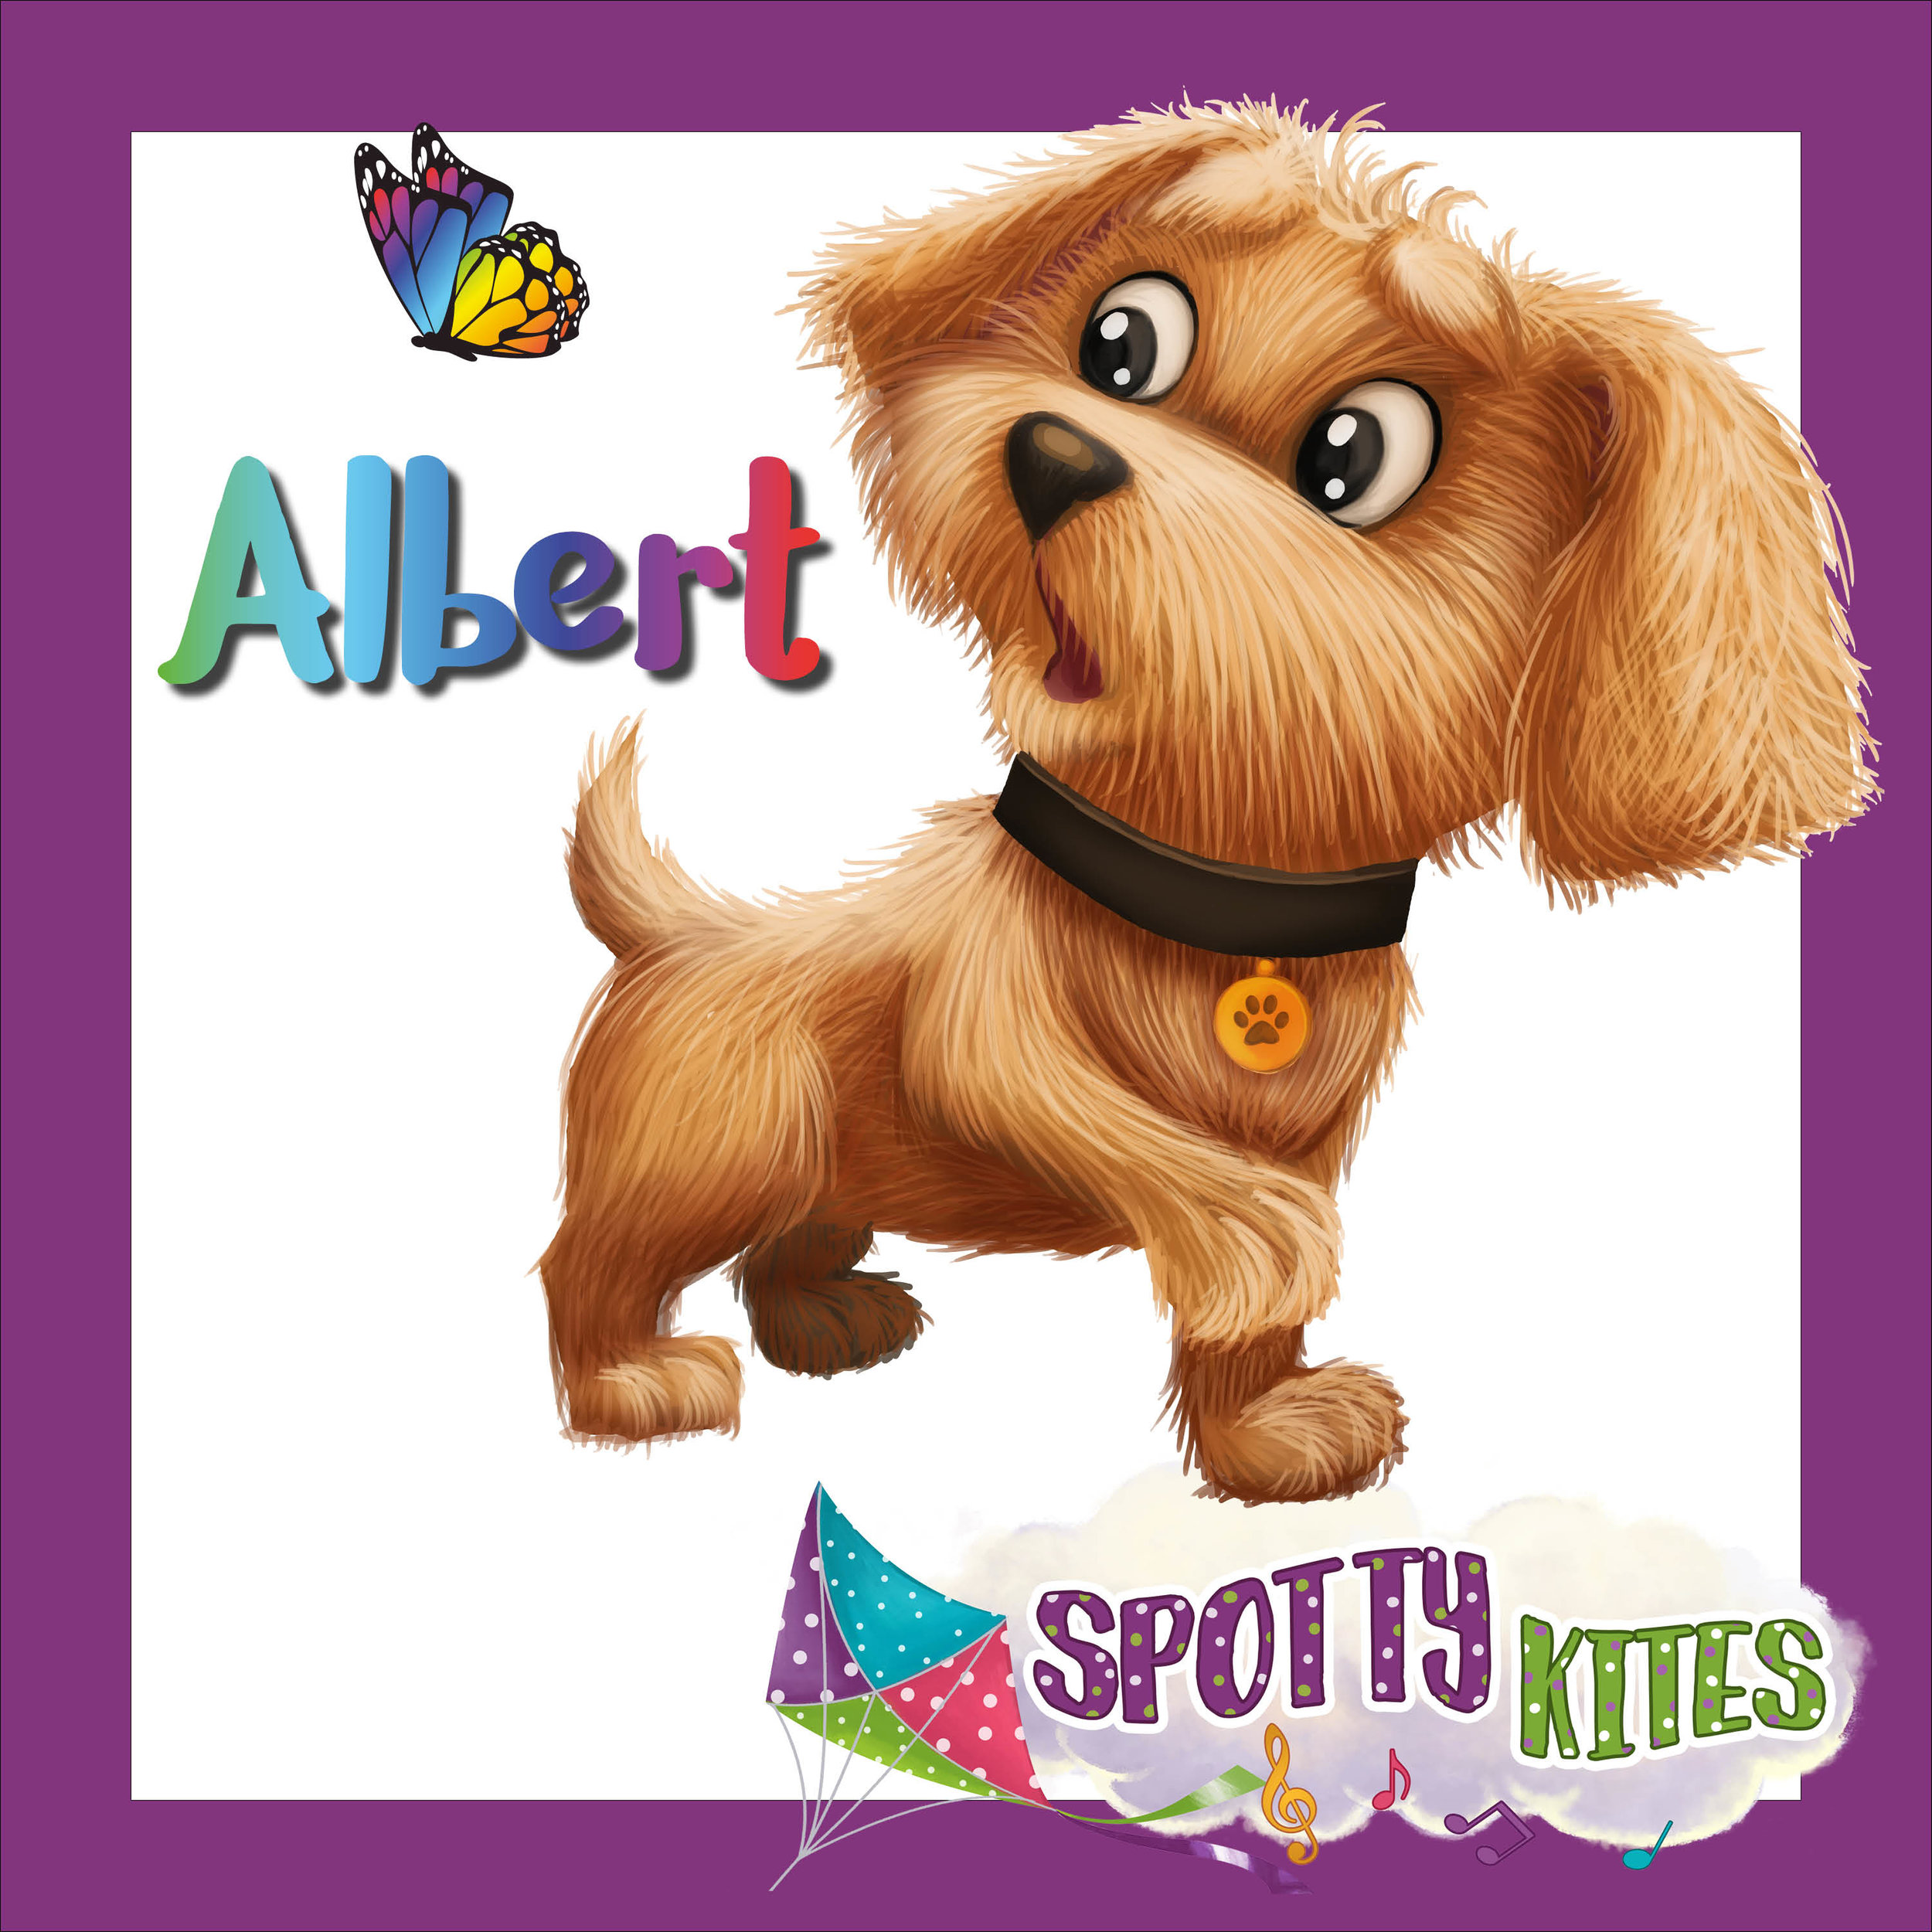 Spotty Kites Albert.jpg